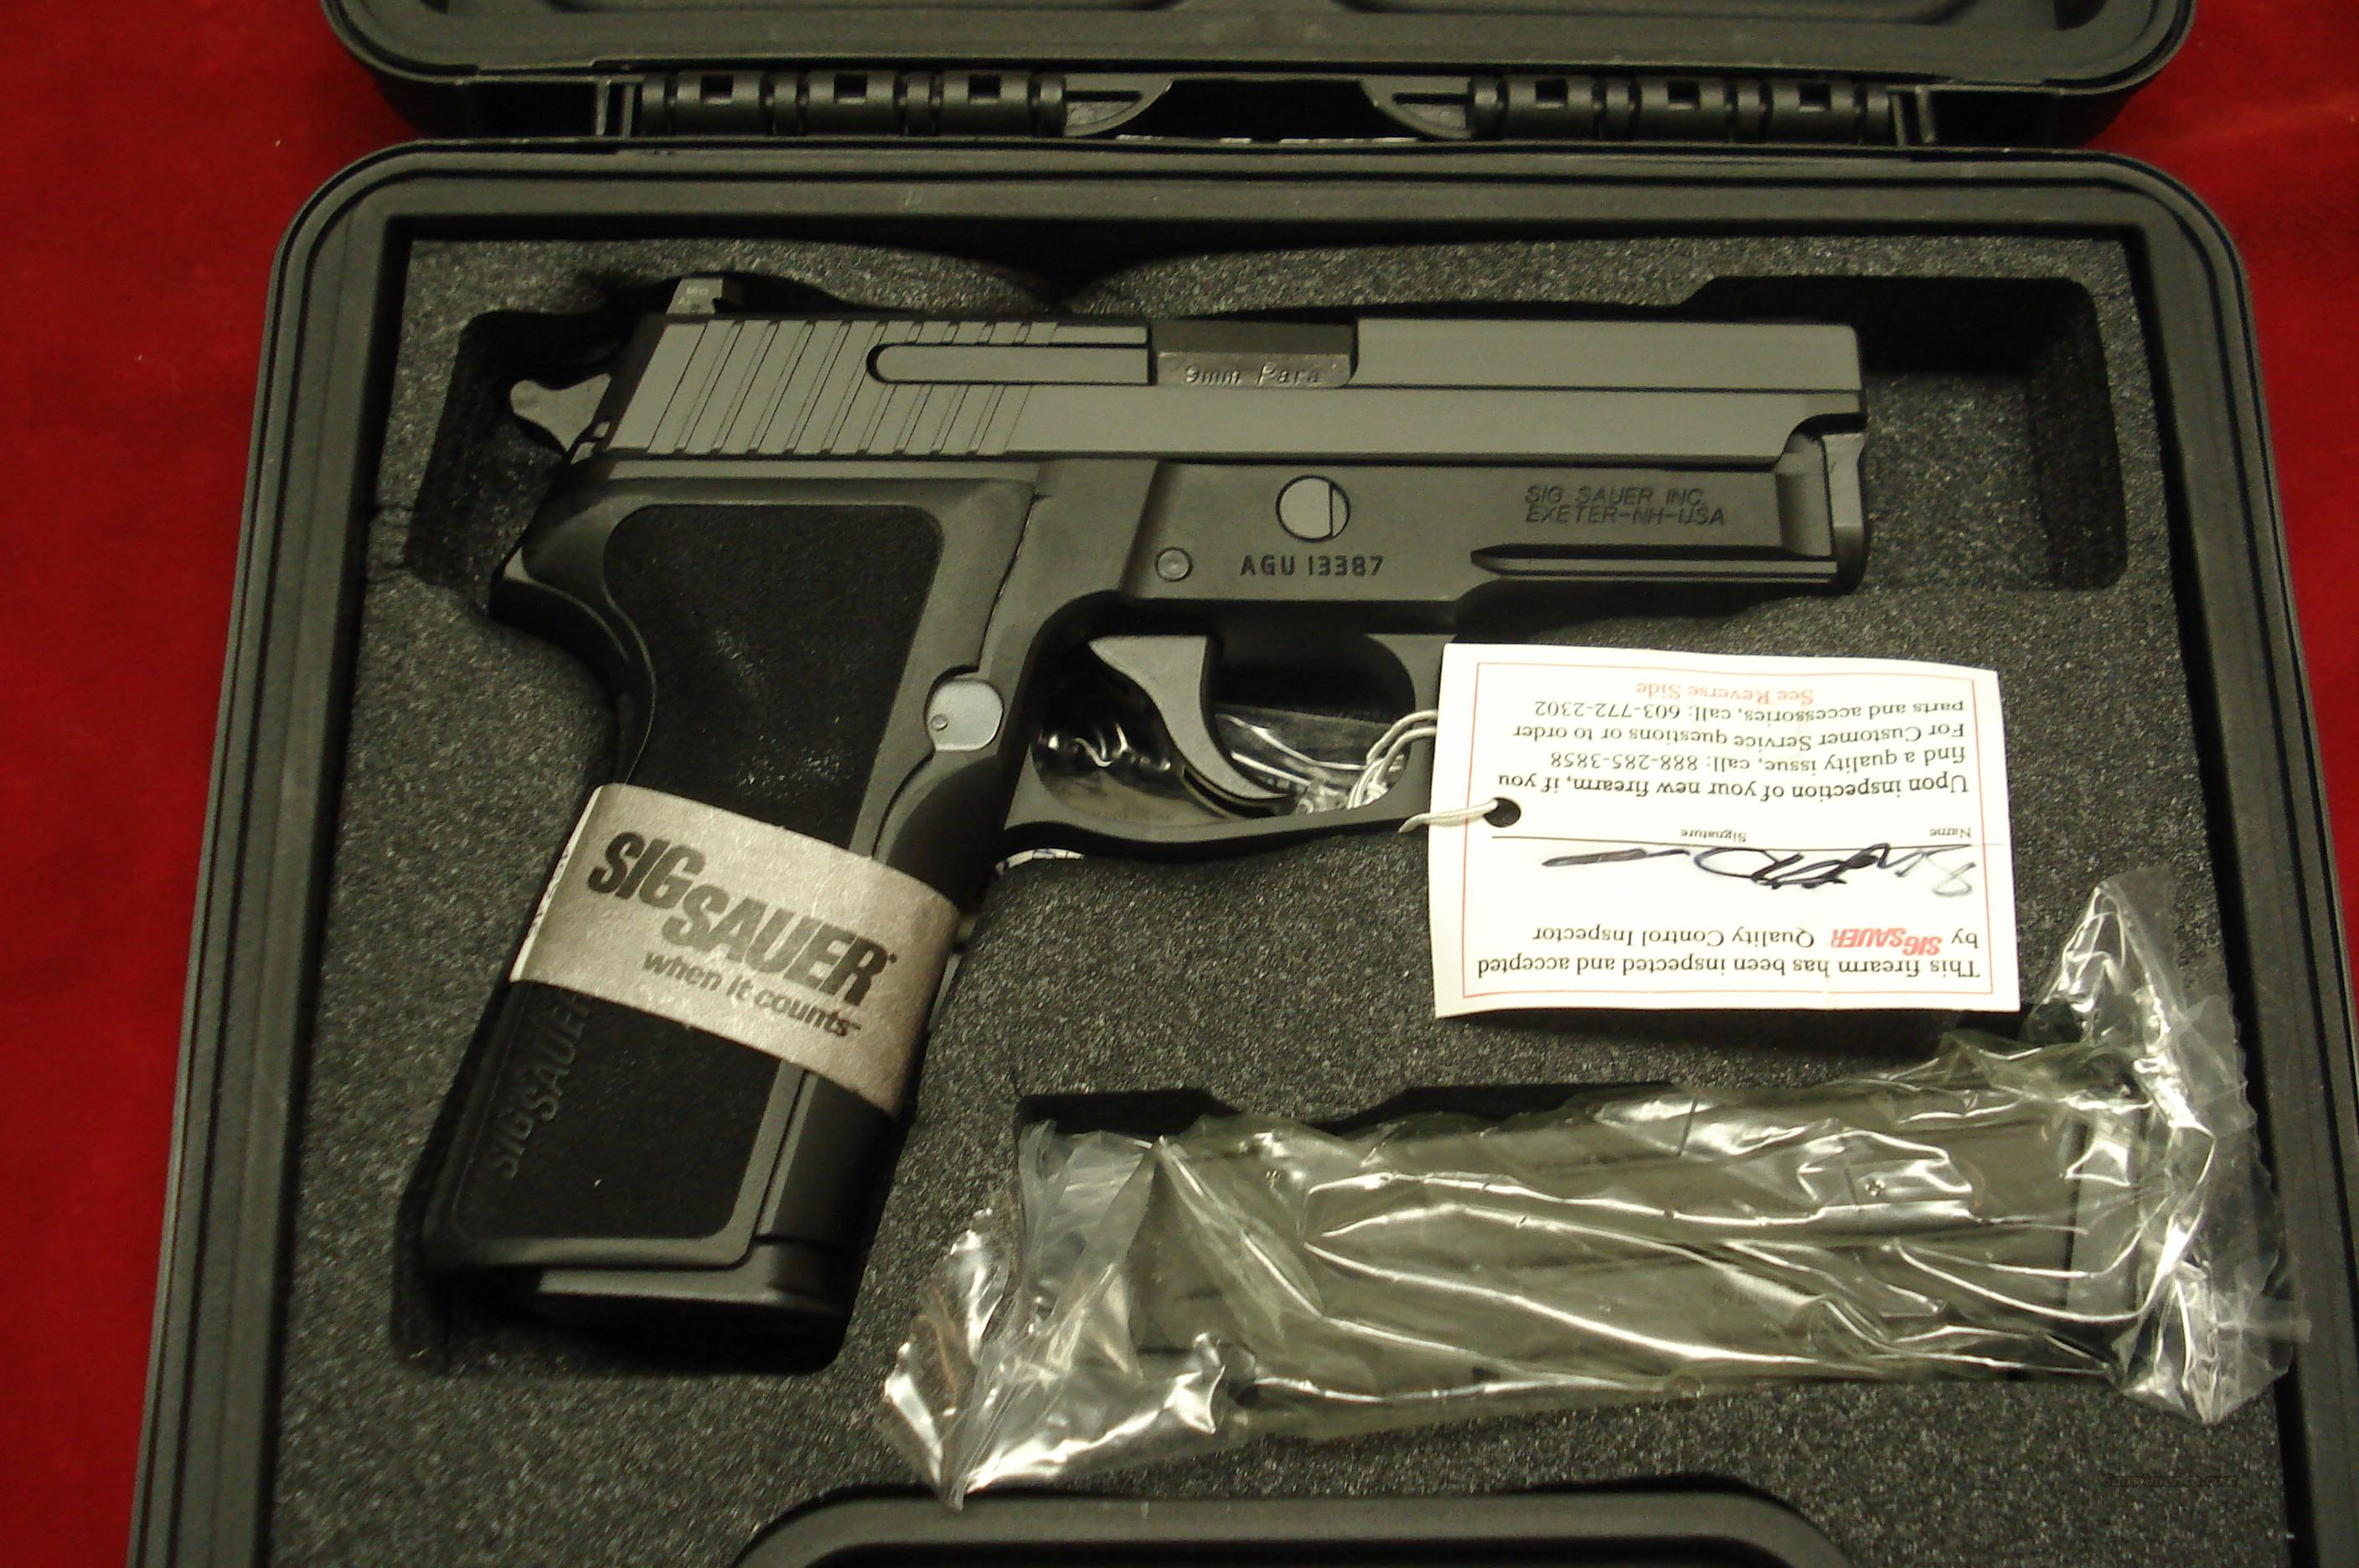 SIG SAUER P229 9MM WITH NIGHT SIGHTS NEW   Guns > Pistols > Sig - Sauer/Sigarms Pistols > P229